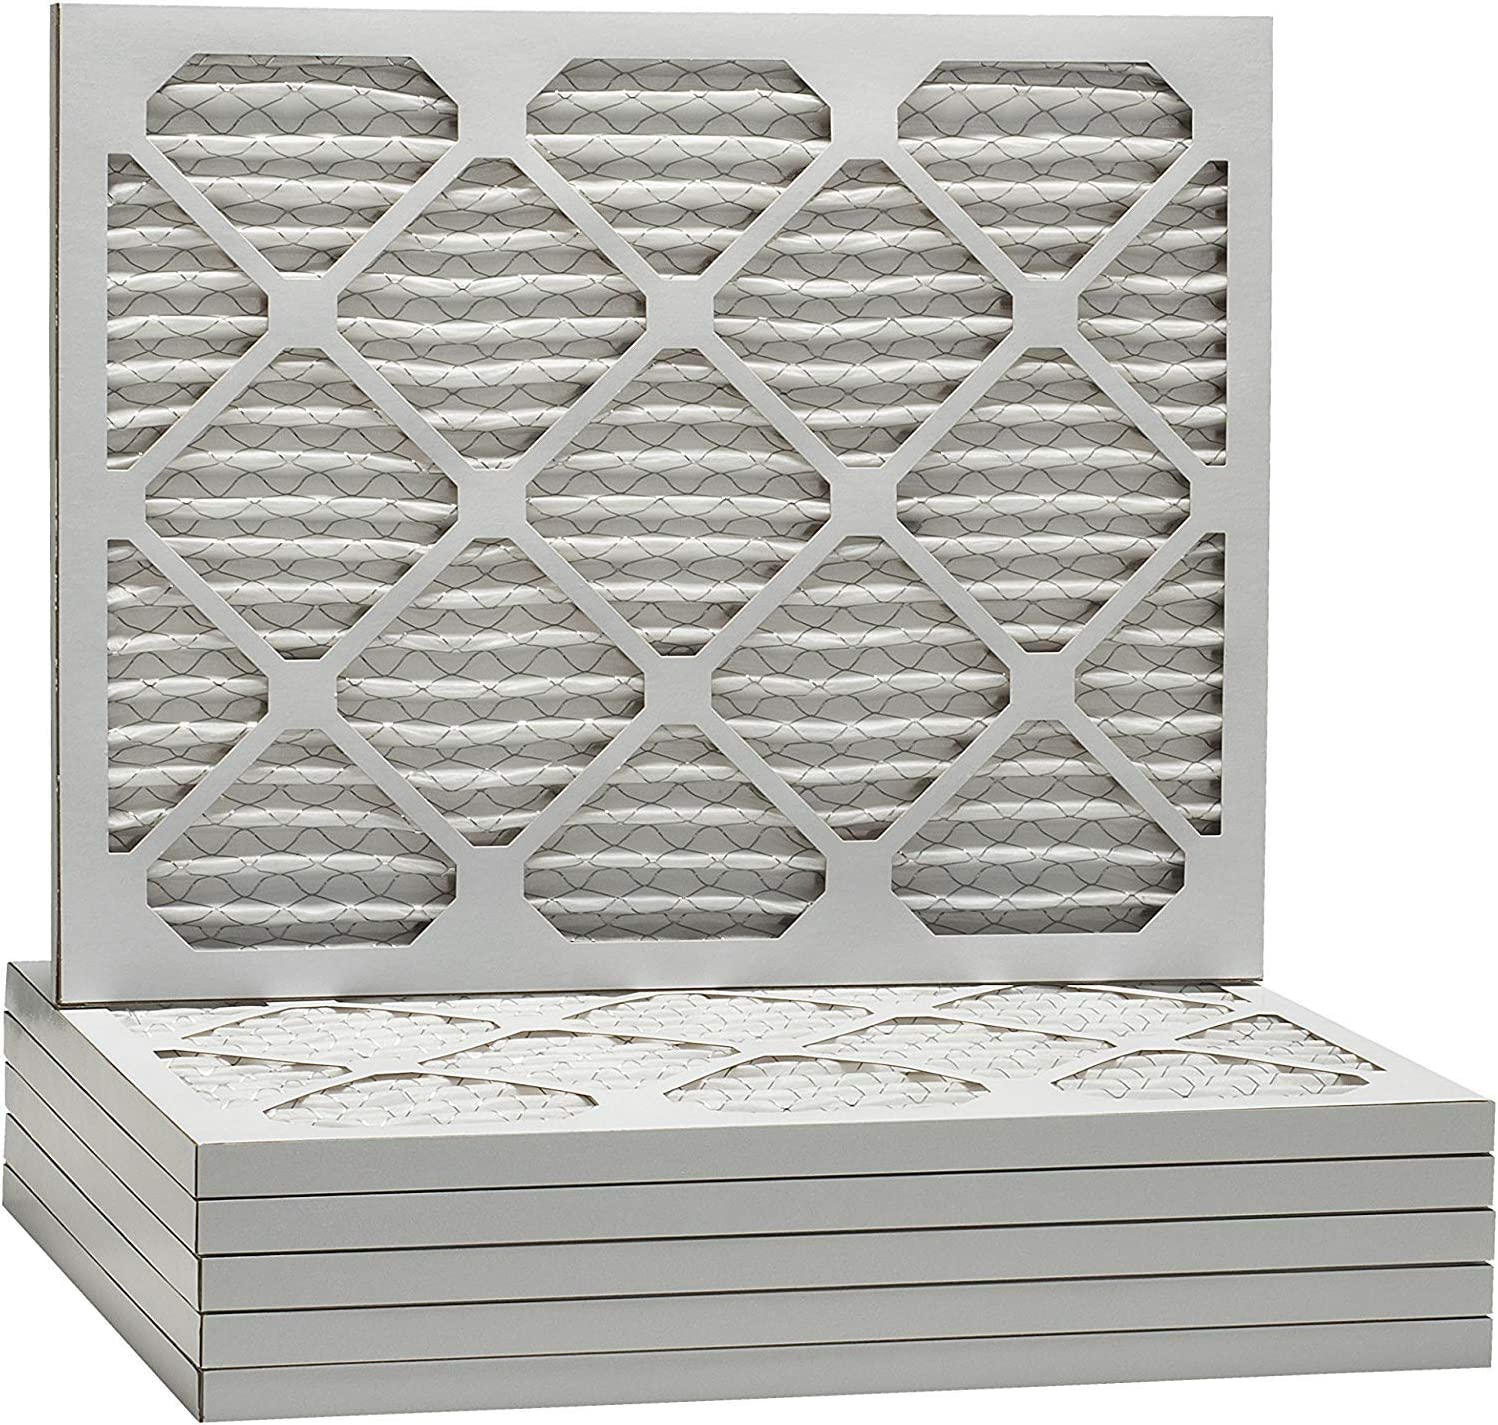 AF 20X20X1 MERV 8 Pleated AC Furnace Air Filter Pack of 4 filters 100/% produced in the USA.